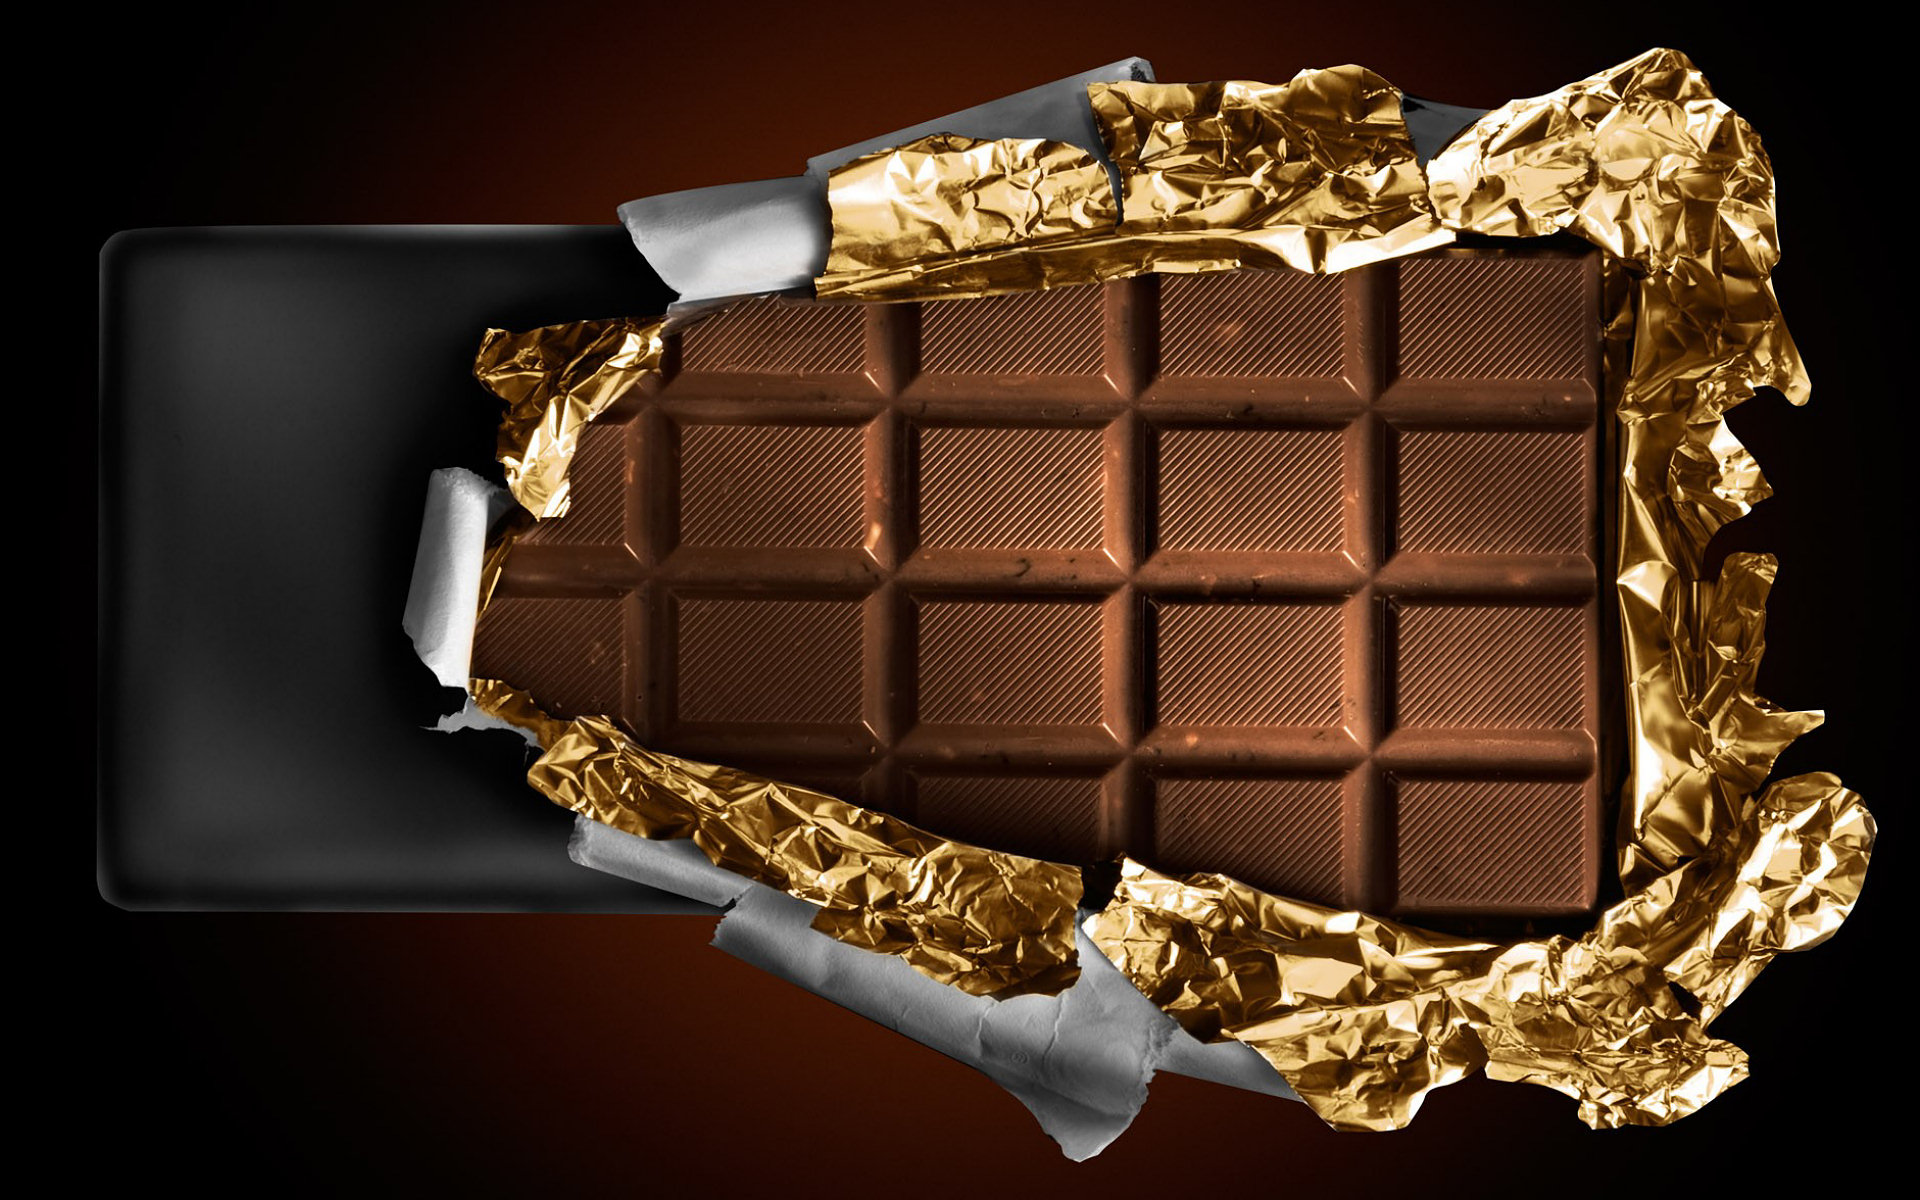 unwrapping a chocolate bar Wallpaper Background 29929 1920x1200